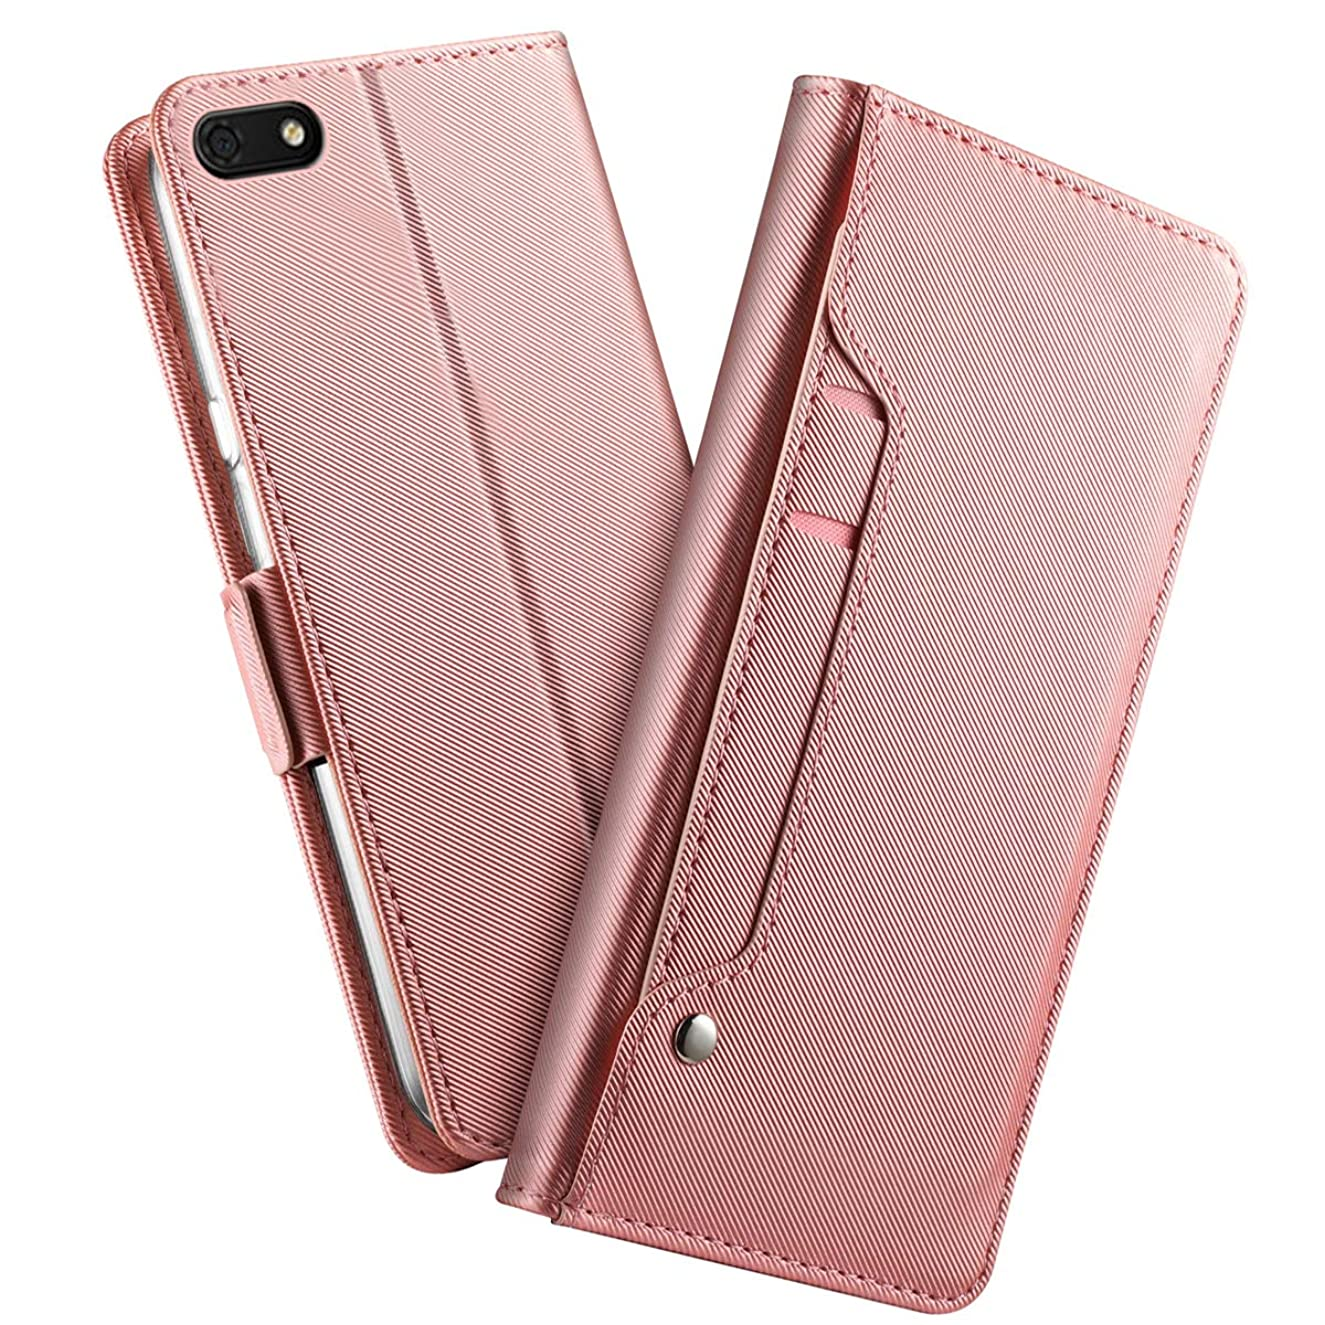 Huawei Y5 Lite 2018 Case, BasicStock Ultra Thin Protective Pu Leather Book Wallet Case with Stand Function, Shockproof Soft Cover for Huawei Y5 Lite 2018(Rose Gold)